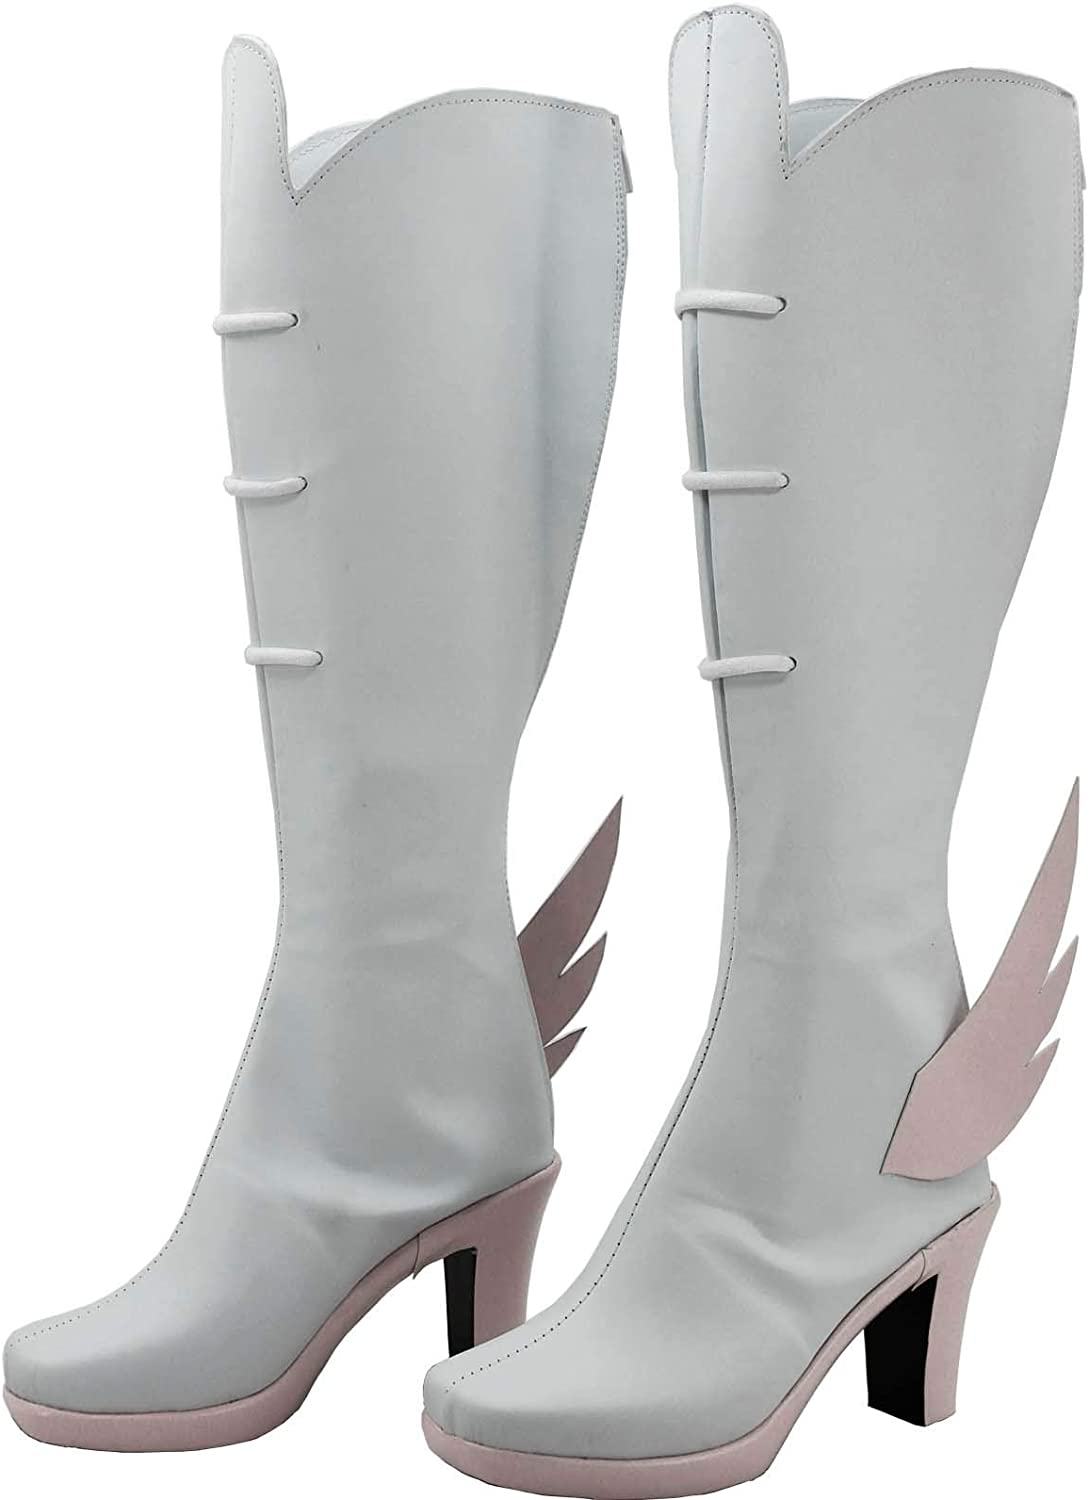 GOTEDDY Women Nonon Cosplay Boots Halloween White Shoes Costume Accessories